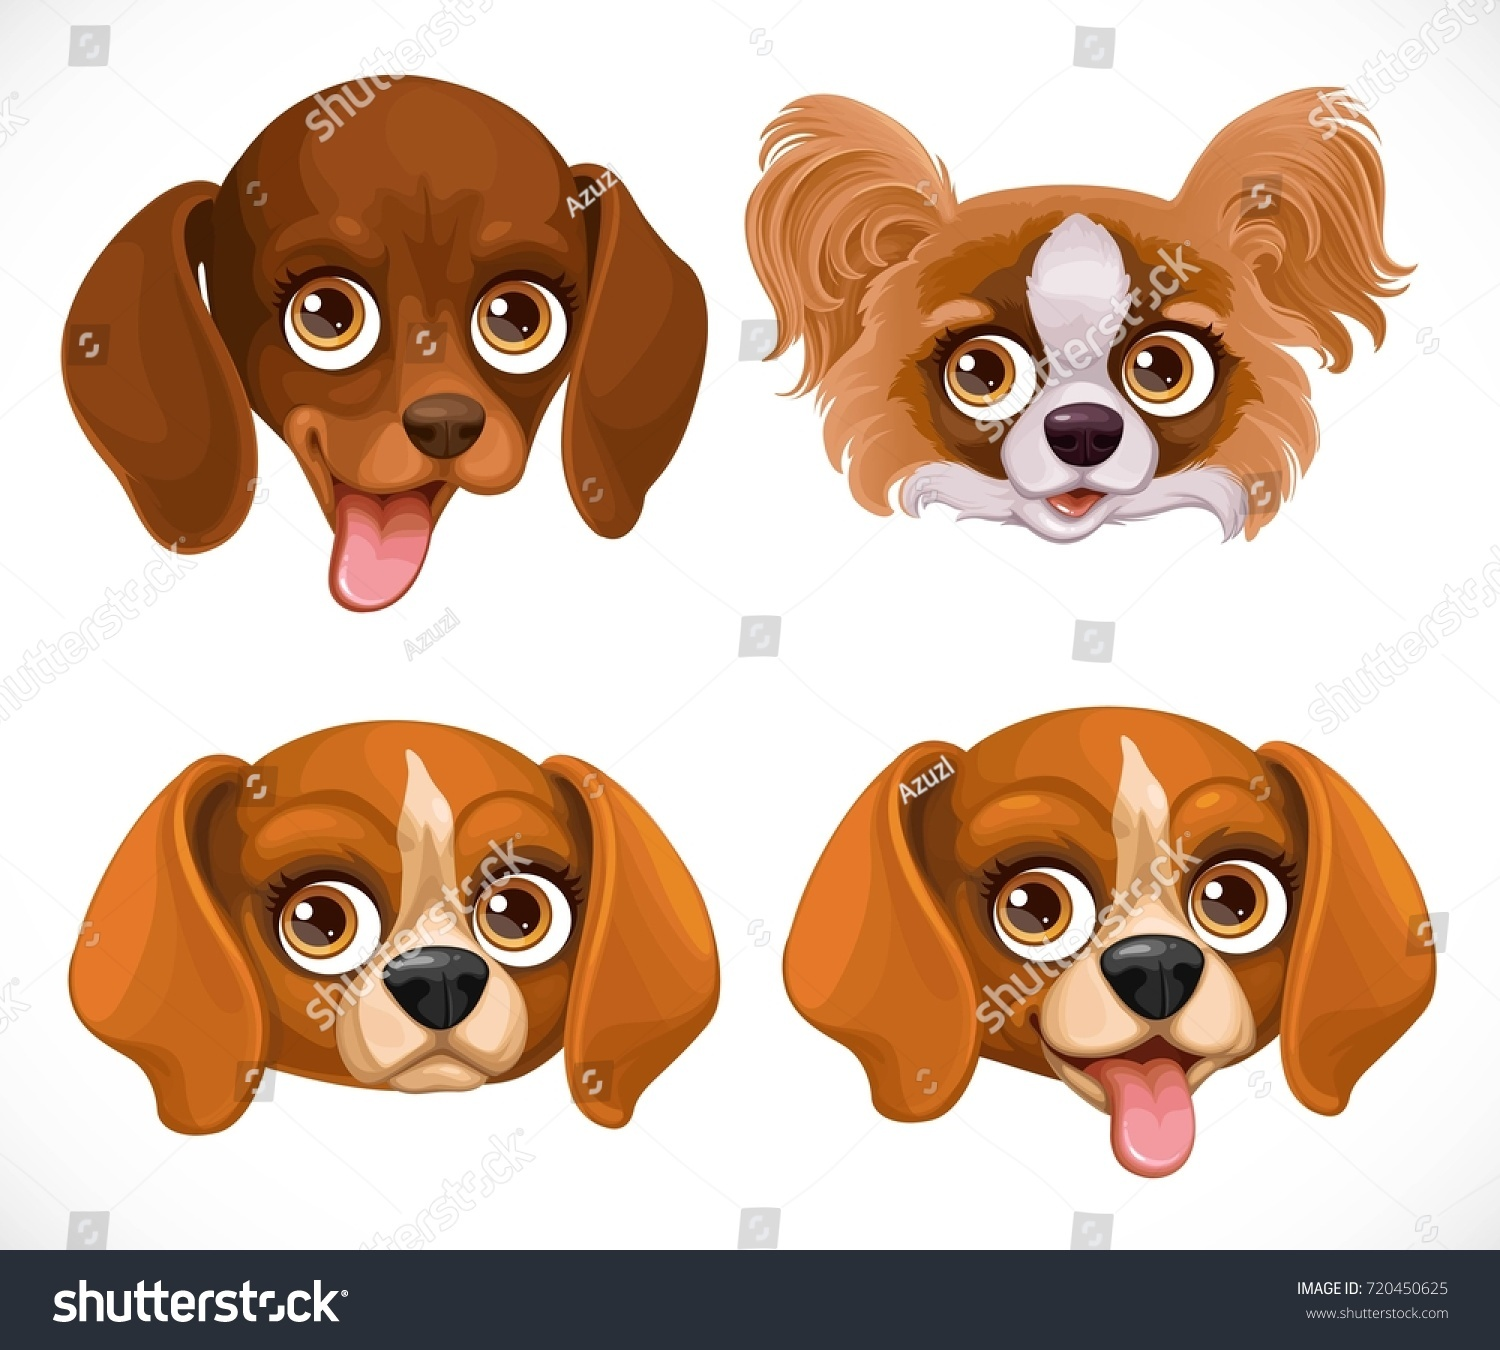 Simple Papillon Canine Adorable Dog - stock-vector-cute-dog-muzzle-beagle-breed-dachshund-butterfly-papillon-isolated-on-white-background-720450625  Photograph_358568  .jpg